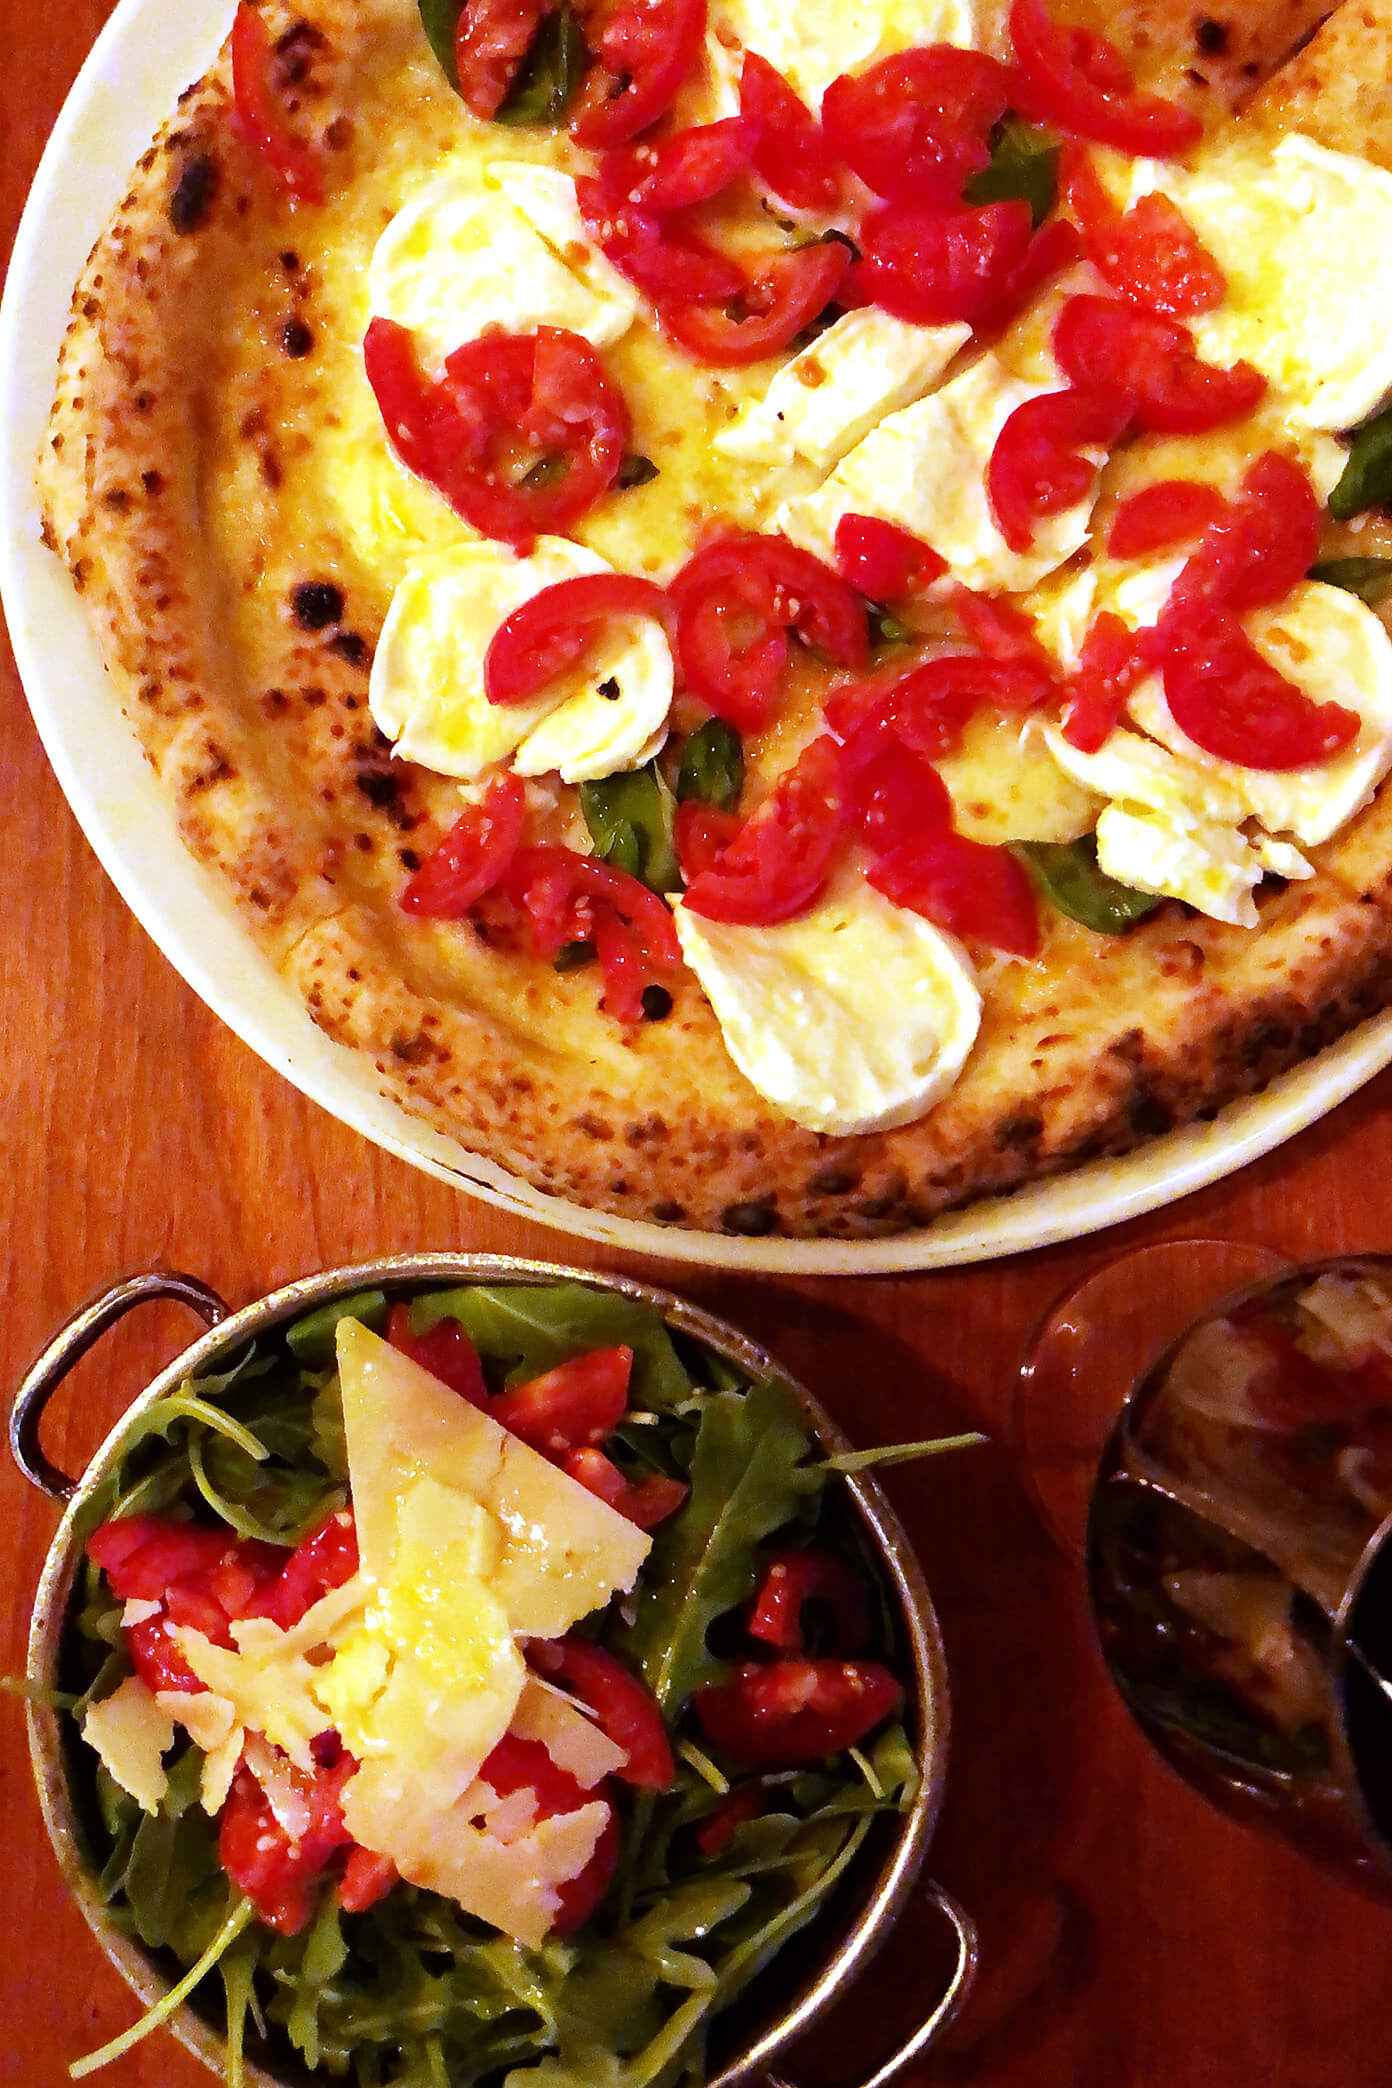 Buffalo Cheese Mozzarella Pizza and Arugula Salad at Giro in Stockhom, Sweden